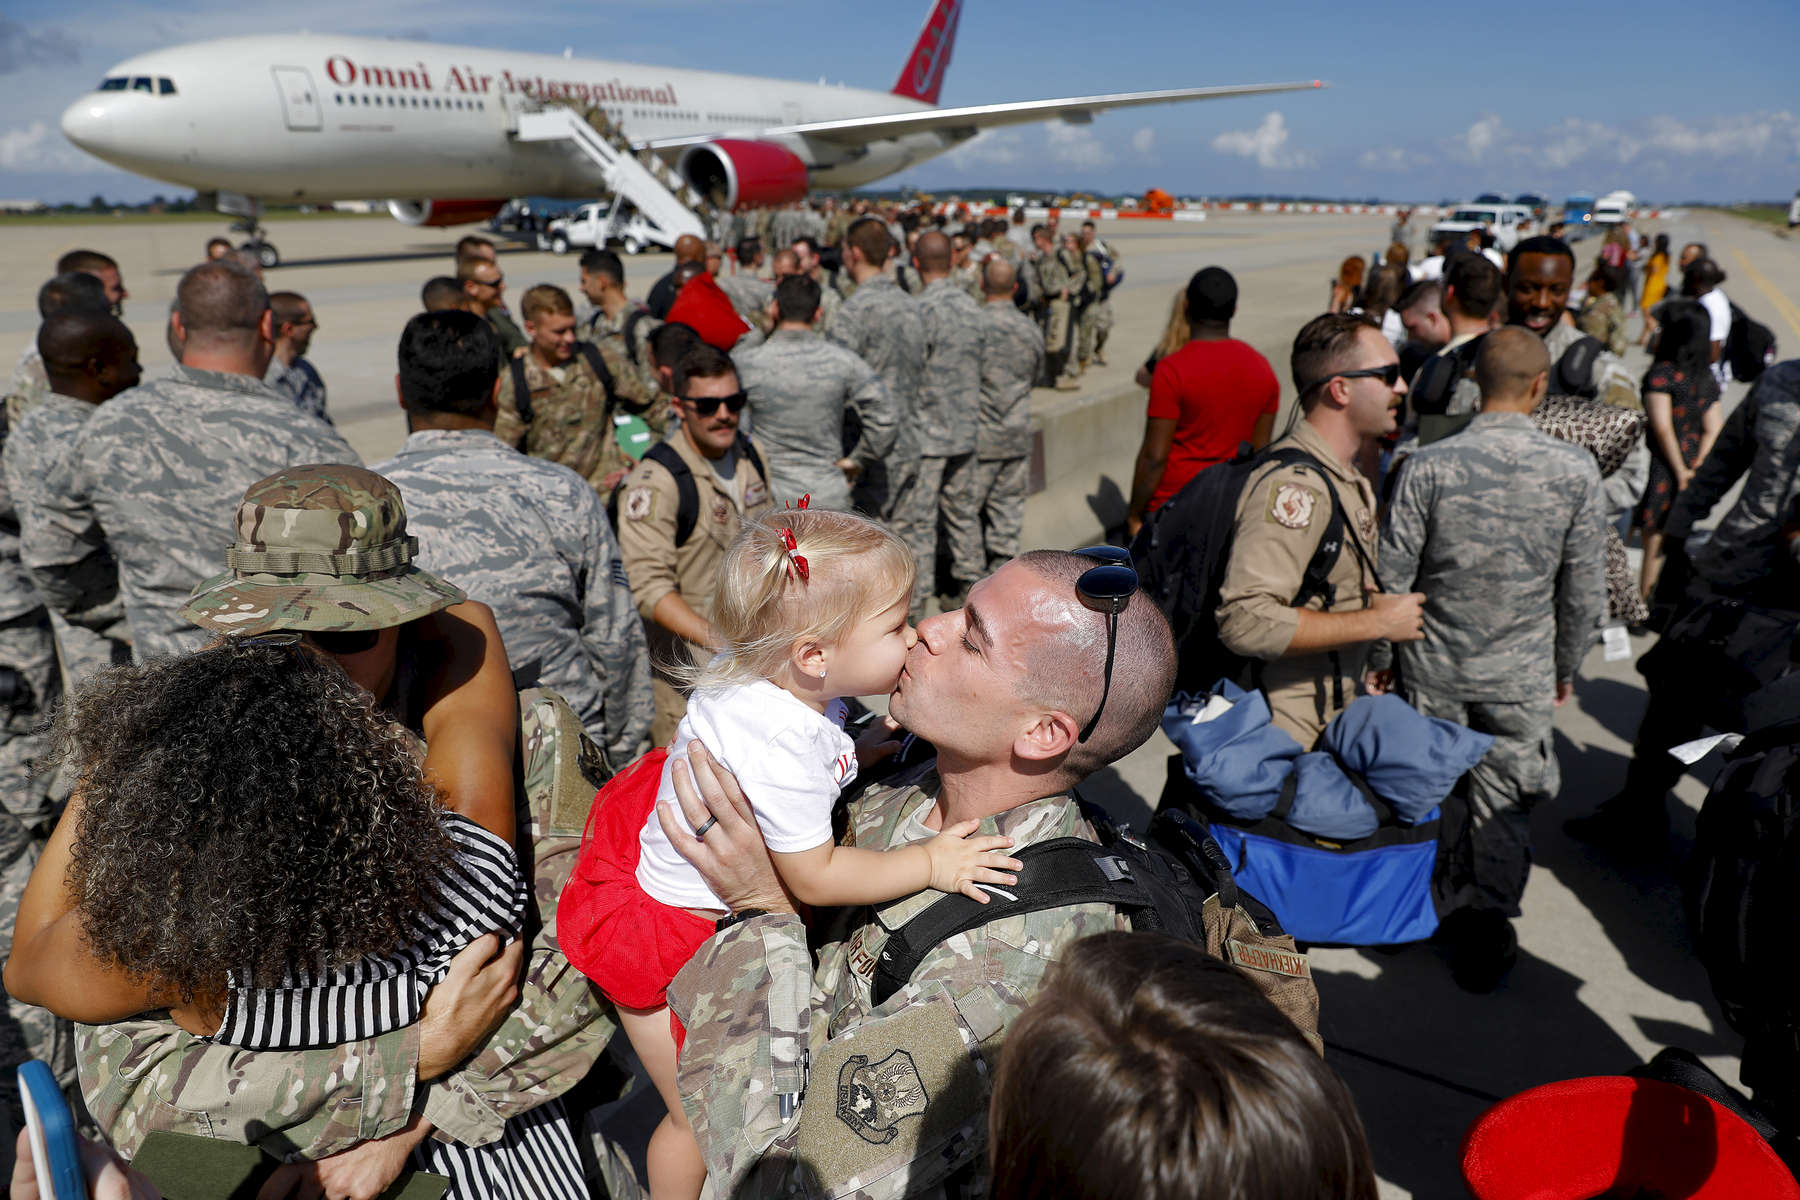 Tech Sgt. Grant Kiekhaefer kisses his two-year-old daughter Kori Kiekhaefer during a homecoming ceremony at Langley Air Force Base Tuesday afternoon October 9, 2018. One hundred eighty-seven members of the 1st Fighter Wing returned home after a six month deployment in the Middle East.